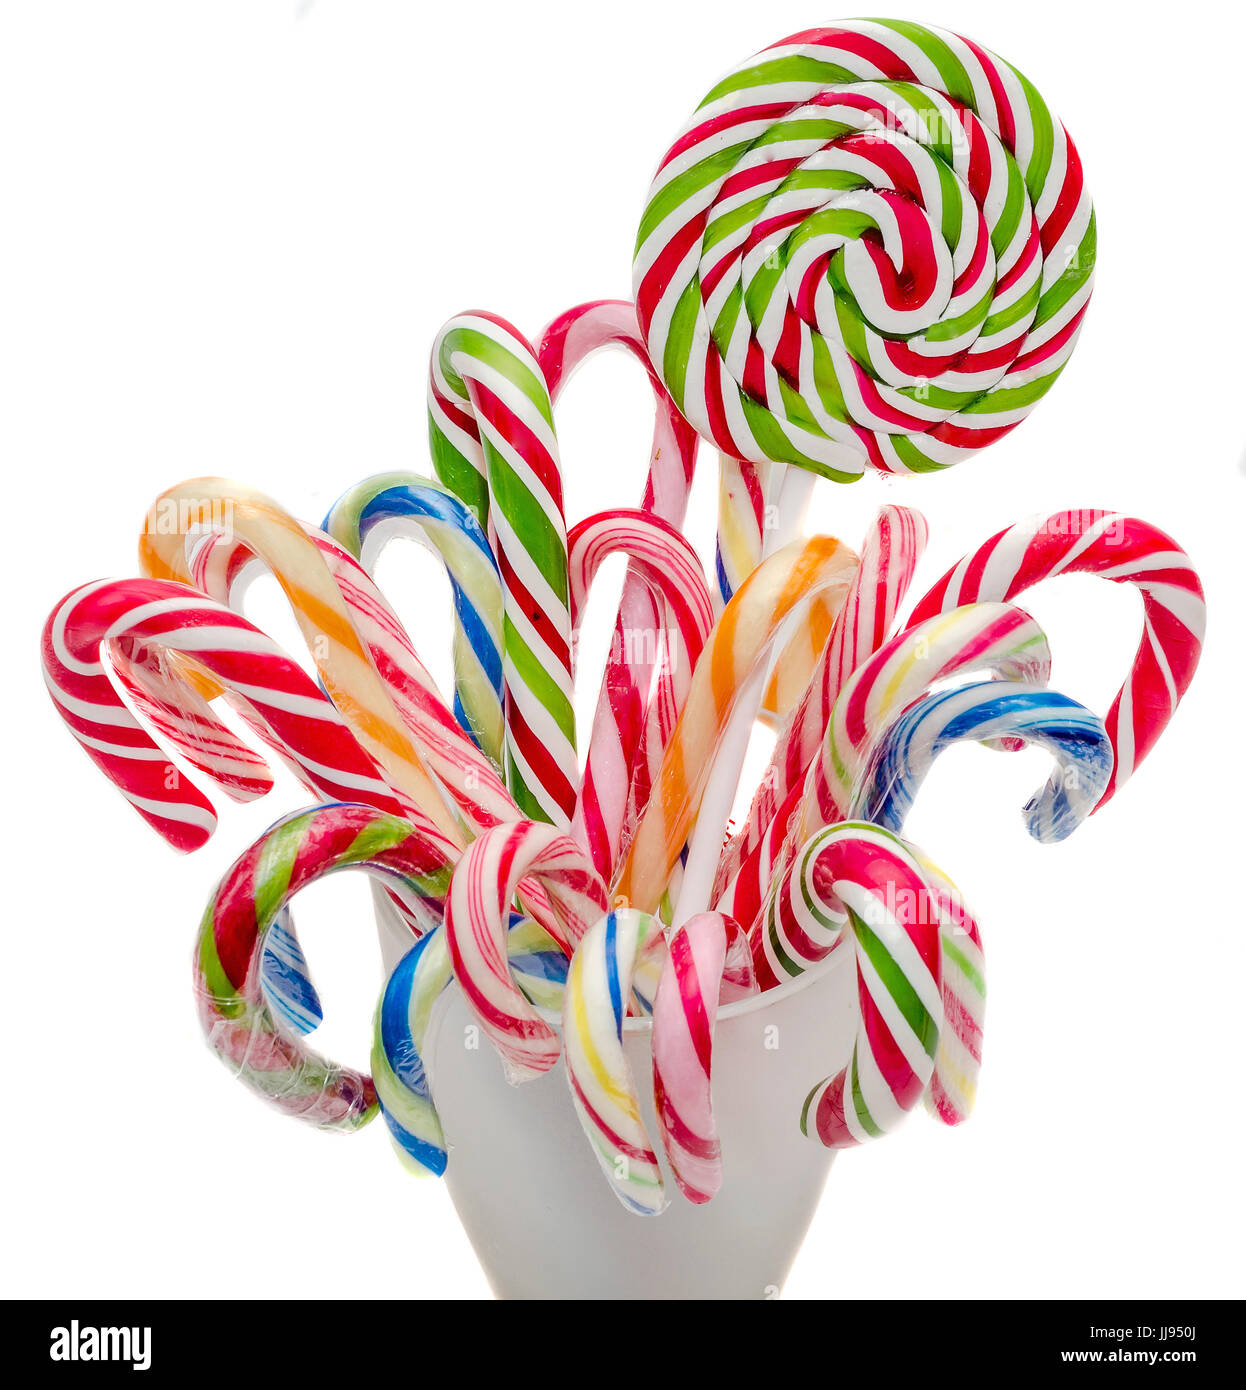 Candy Christmas.Vivid Colored Candy Christmas Sticks Lollipops Spiral